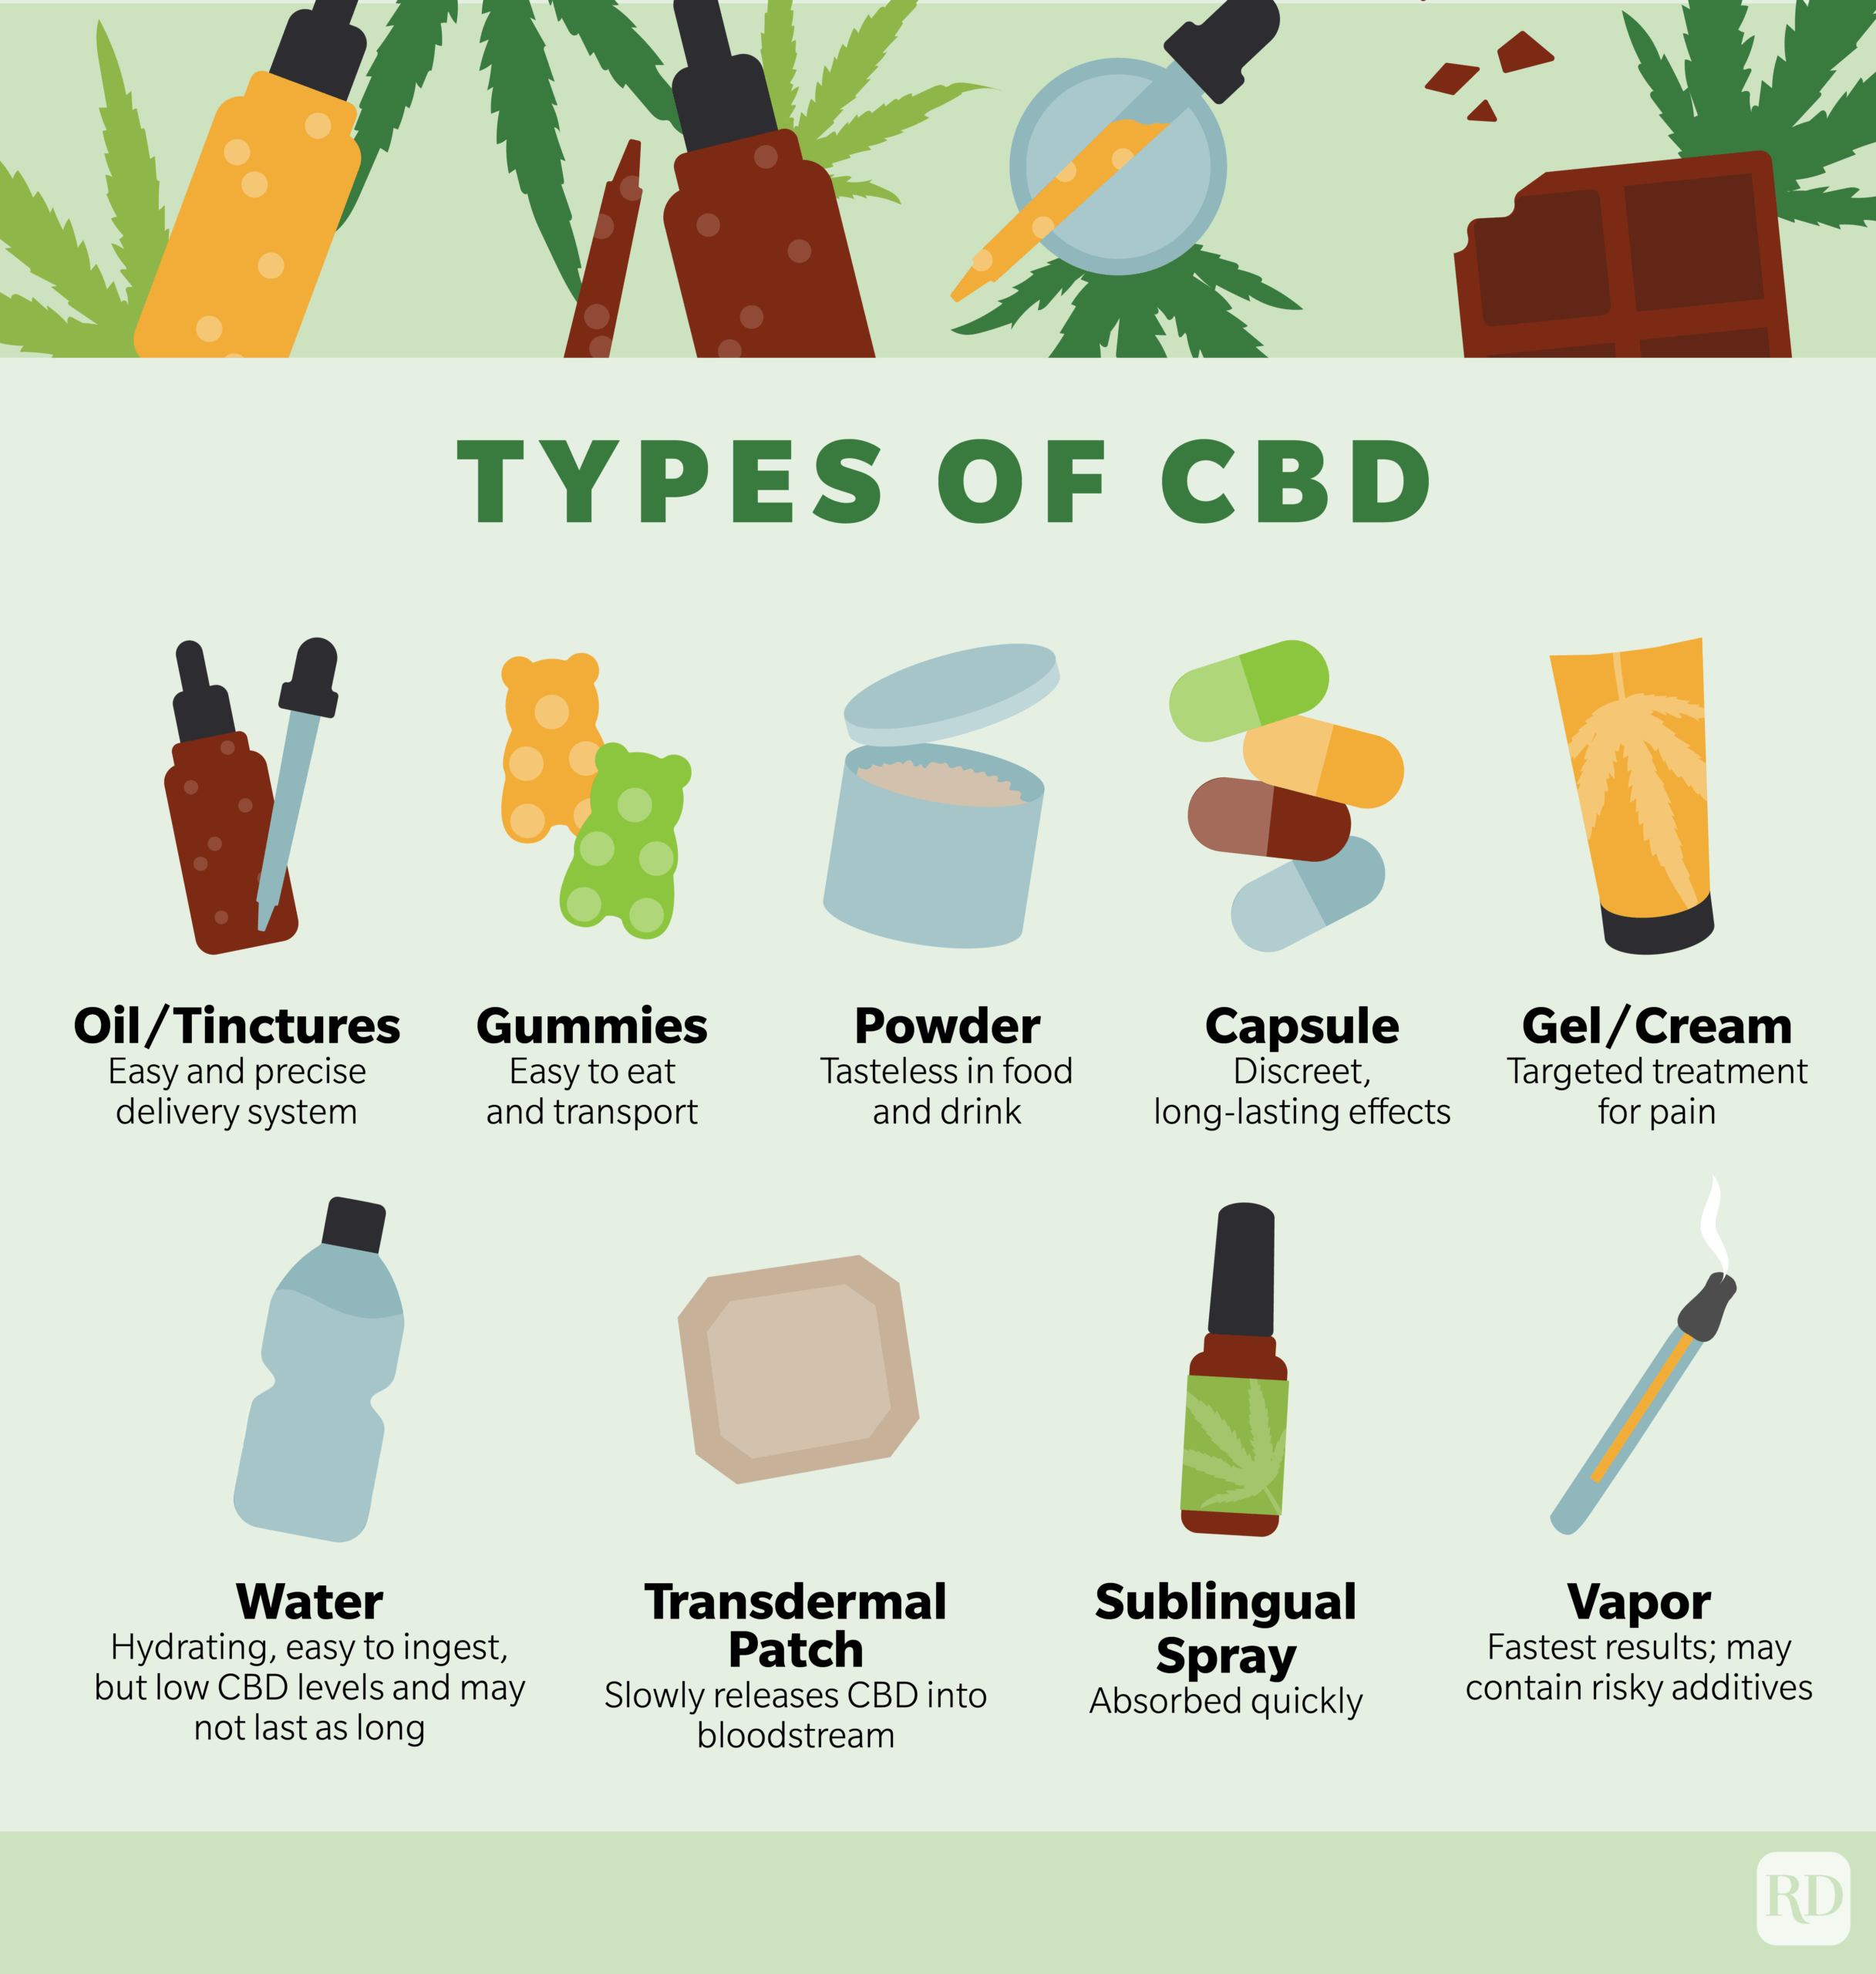 types of CBD infographic denoting oil/tinctures, gummies, powder, capsule, gel/cream, water, skin patch, spray, and vapor